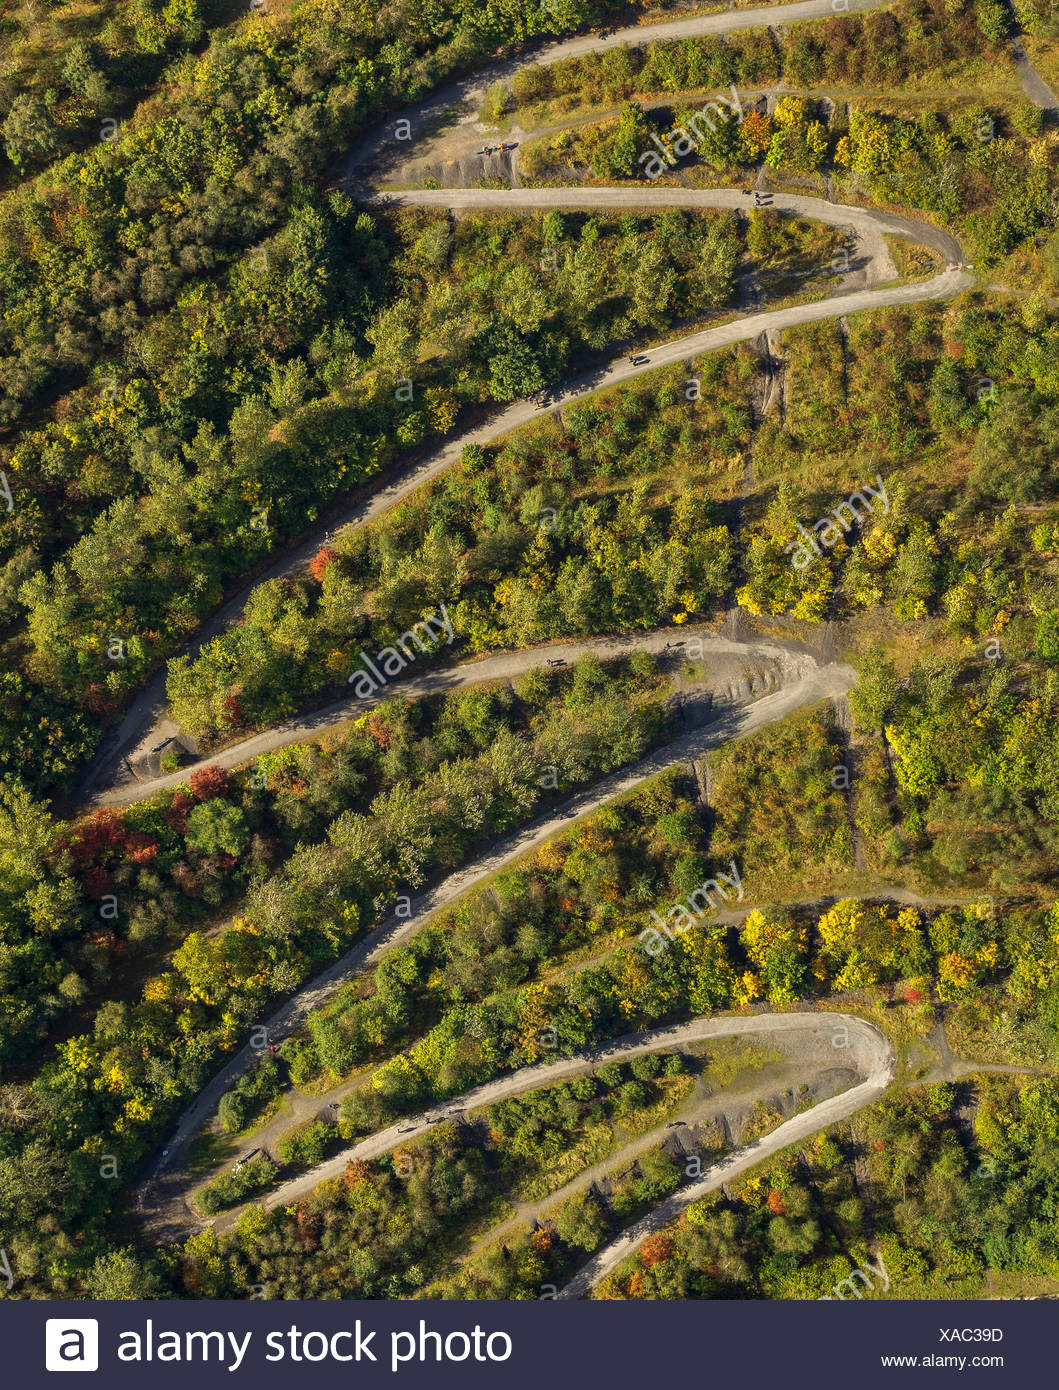 Winding Path Aerial Stock Photos & Winding Path Aerial Stock Images ...